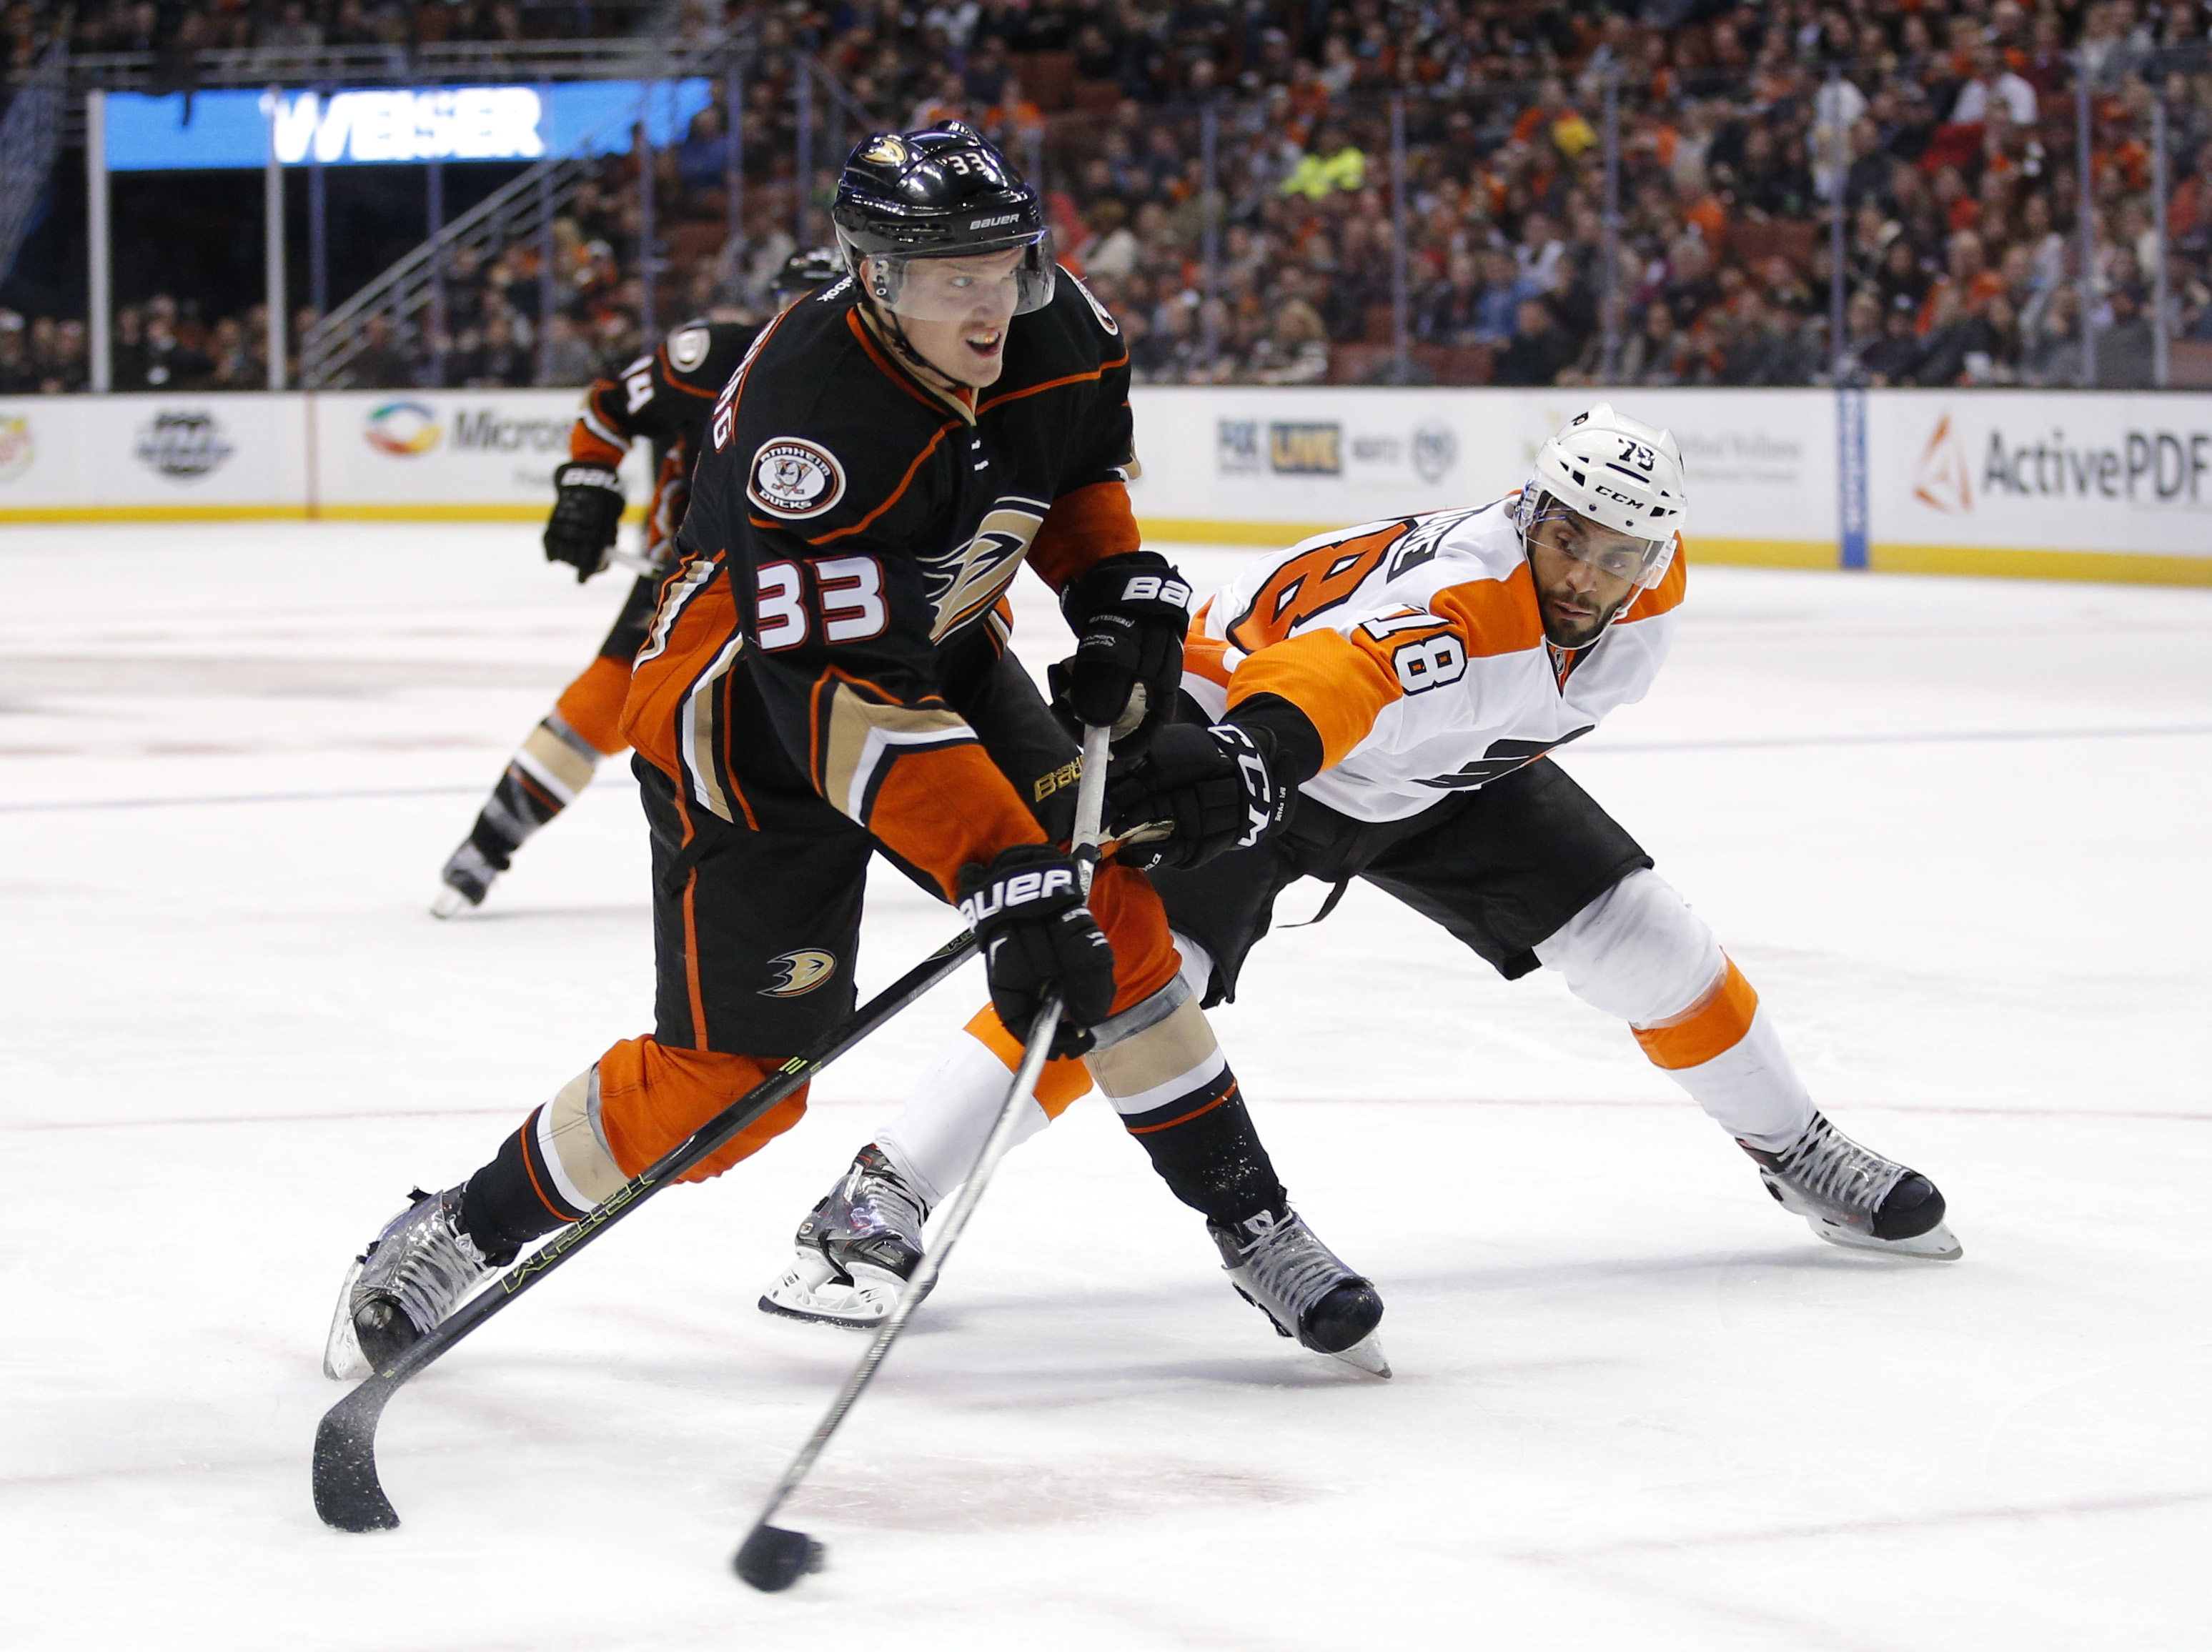 Anaheim Ducks' Jakob Silfverberg, left, of Sweden, shoots as he is defended by Philadelphia Flyers' Pierre-Edouard Bellemare, of France, during the second period of an NHL hockey game, Sunday, Dec. 27, 2015, in Anaheim, Calif. (AP Photo/Jae C. Hong)